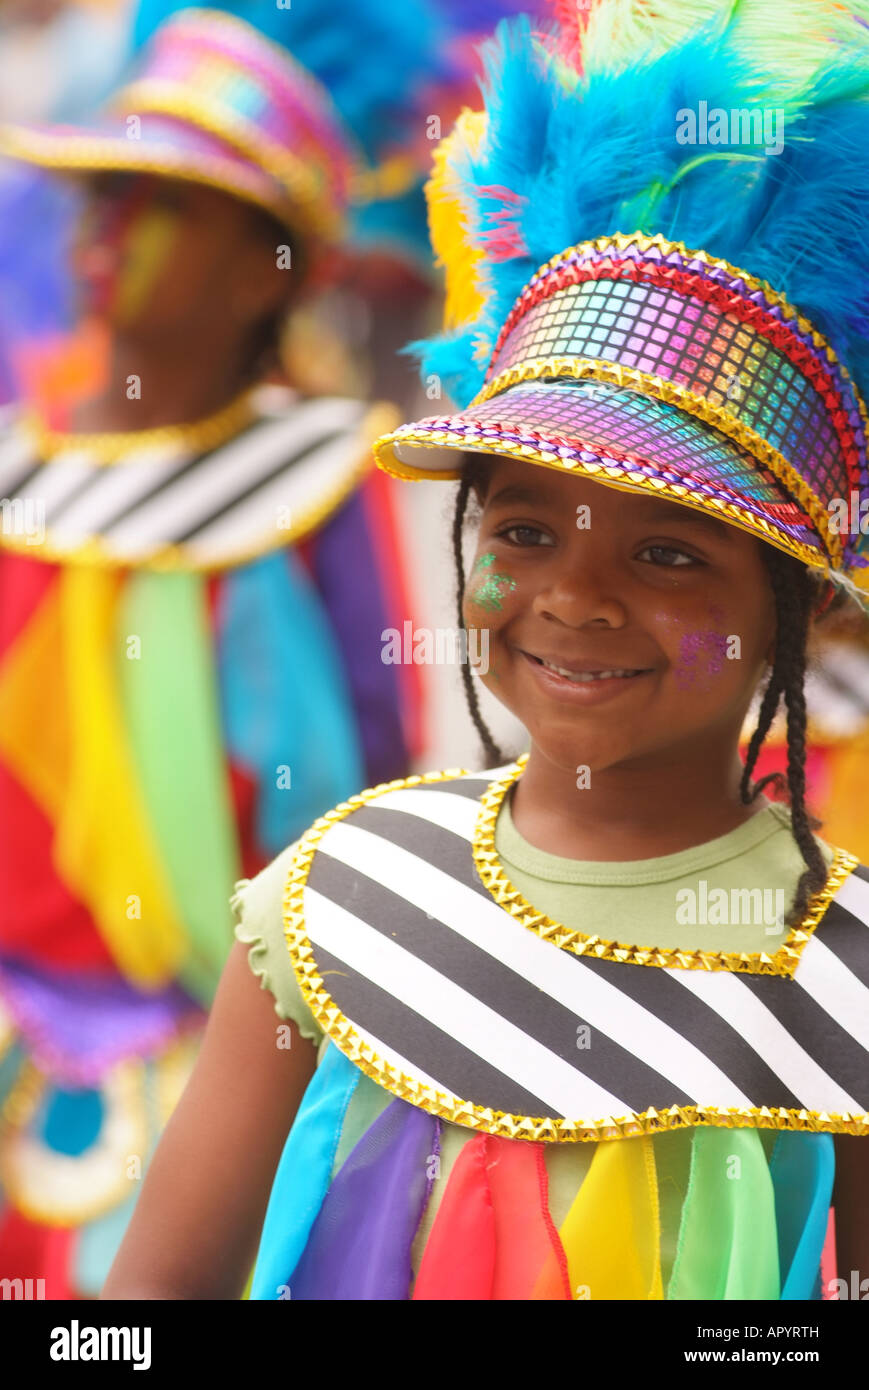 CANADA Quebec Montreal carifest A Festival Parade of the Caribbean nations and islands - Stock Image